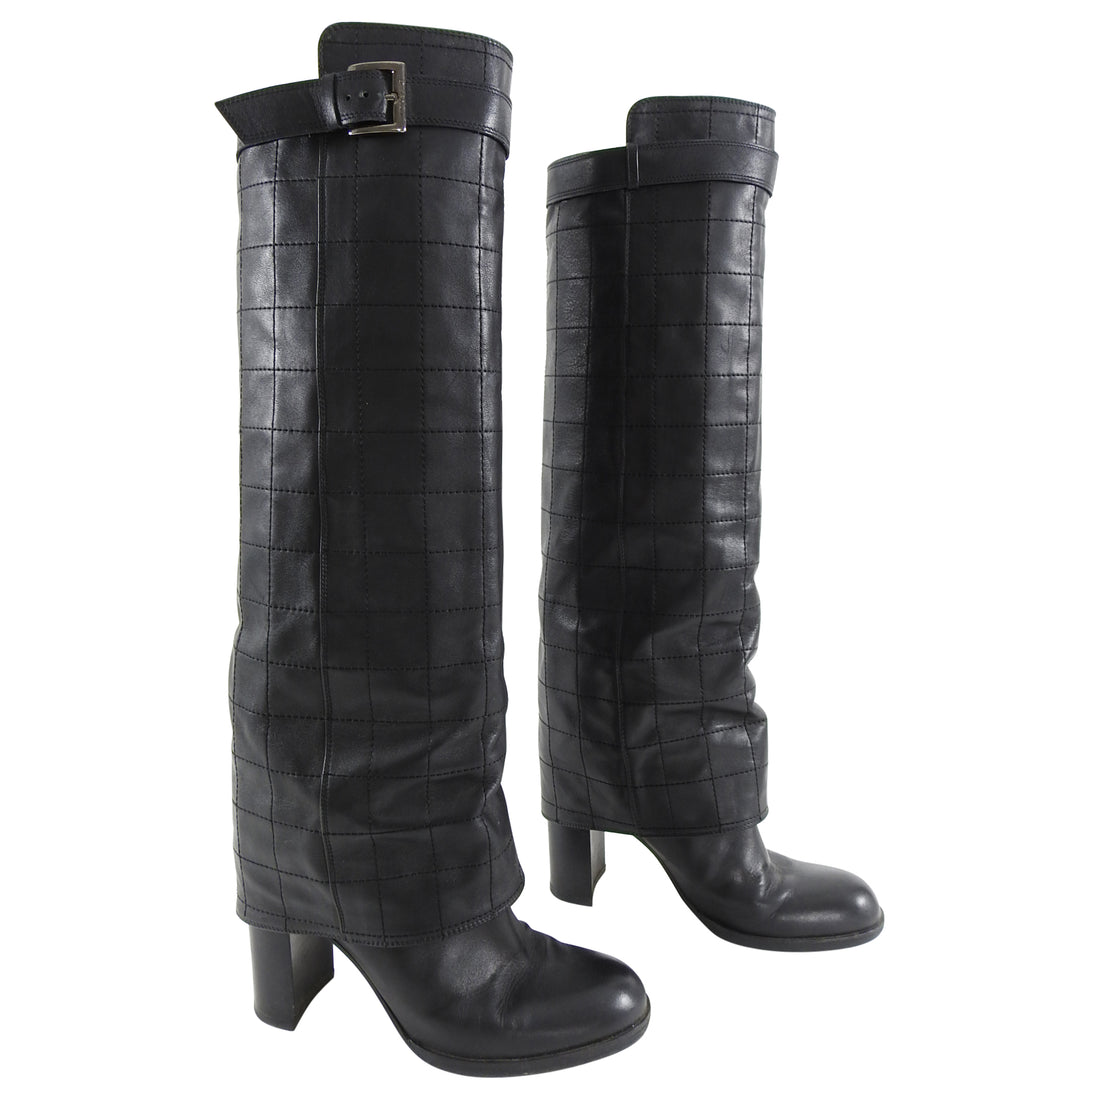 Chanel Black Leather Quilted Tall Boots - 39